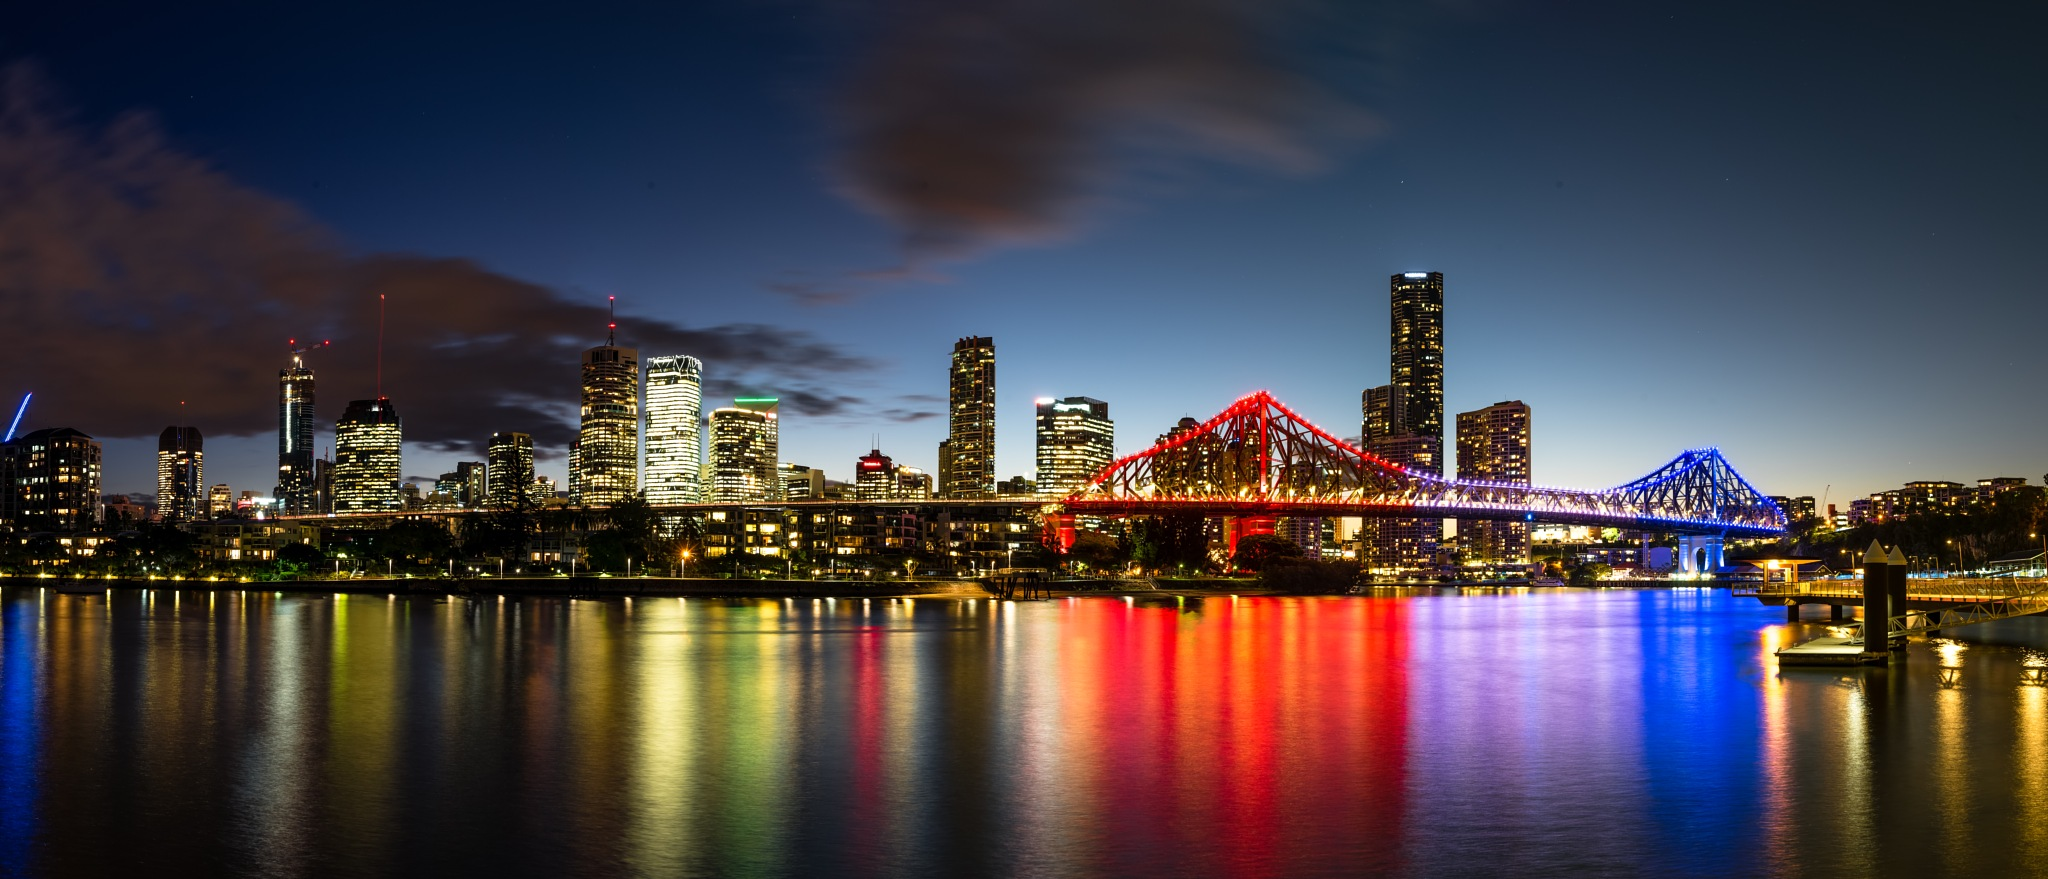 Brisbane and the Story Bridge by Bruce Patterson